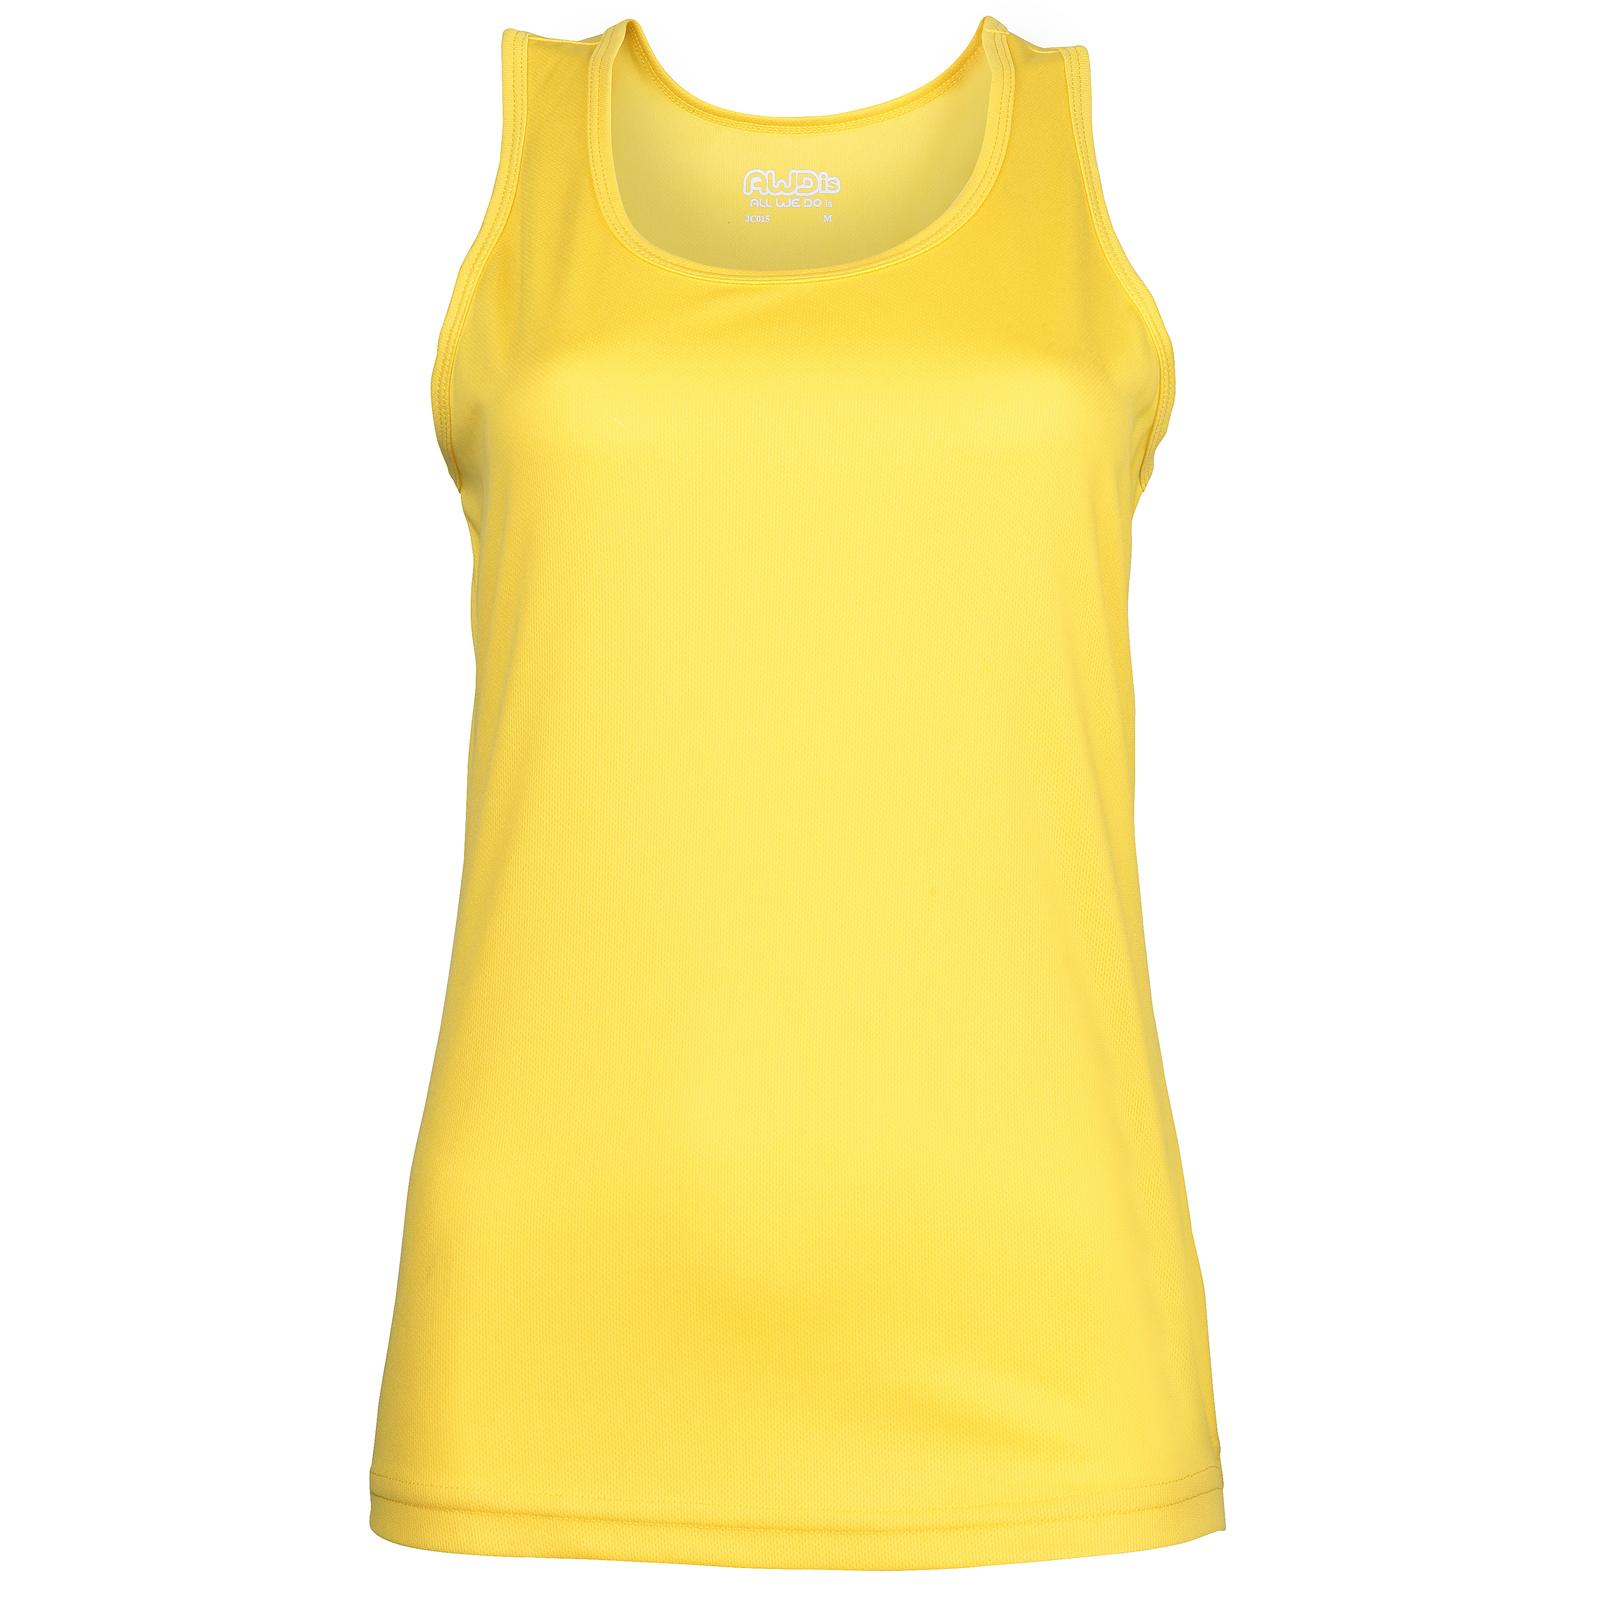 Cooling clothing for women